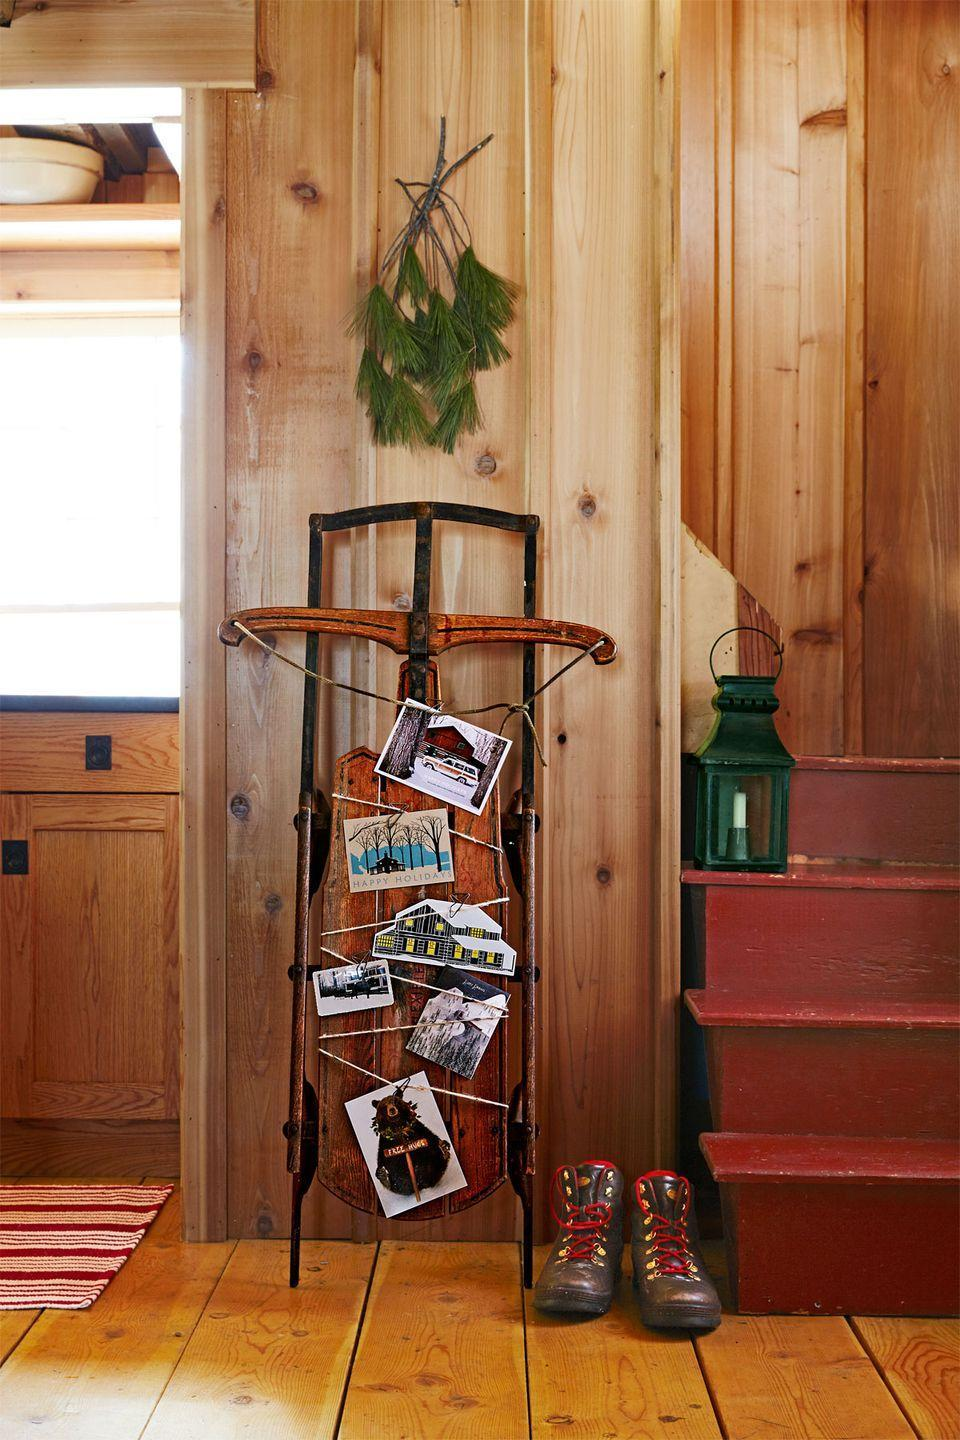 <p>A century-old coaster calls to mind winters past and showcases a flurry of Christmas greetings.</p>